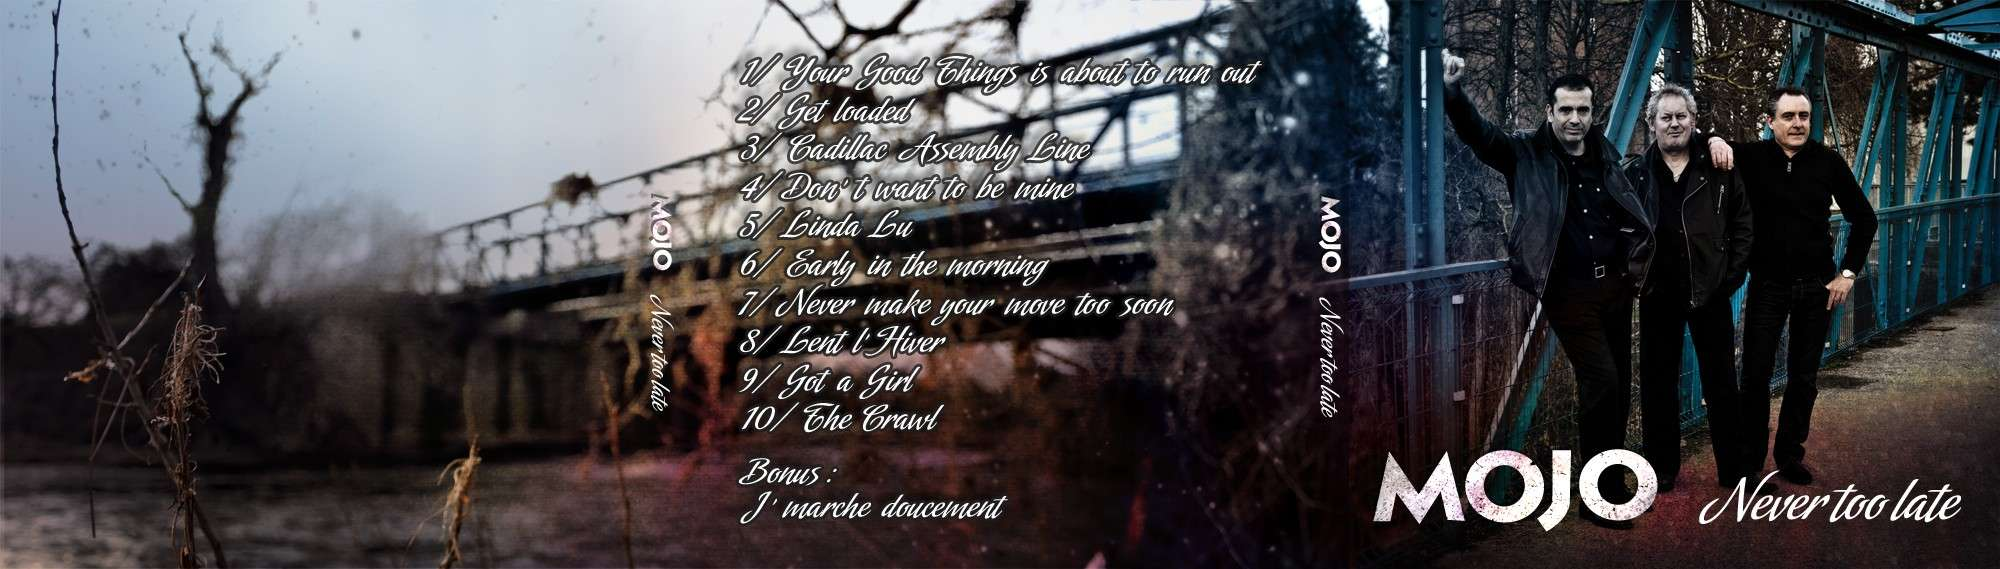 Putain 15ans !!!!!!!!!!!!!!!!!!!!!!! Never Too Late l'album de Mojo - Page 6 Exteri11